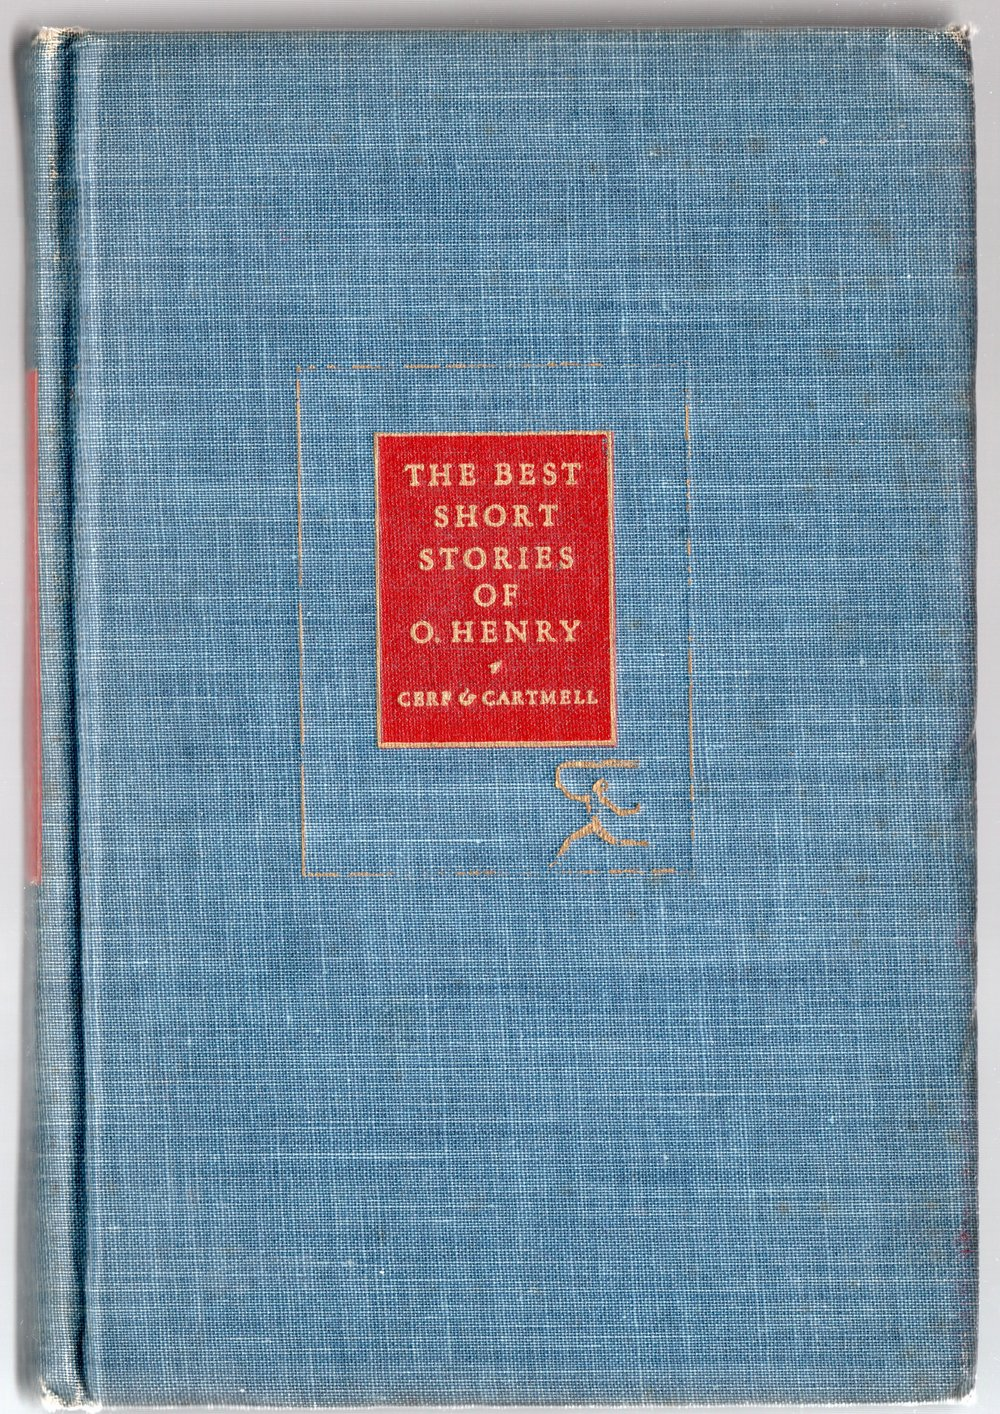 Peak inside this copy of O.Henry shorts stories and we'll watch Vincent Starrett at work.